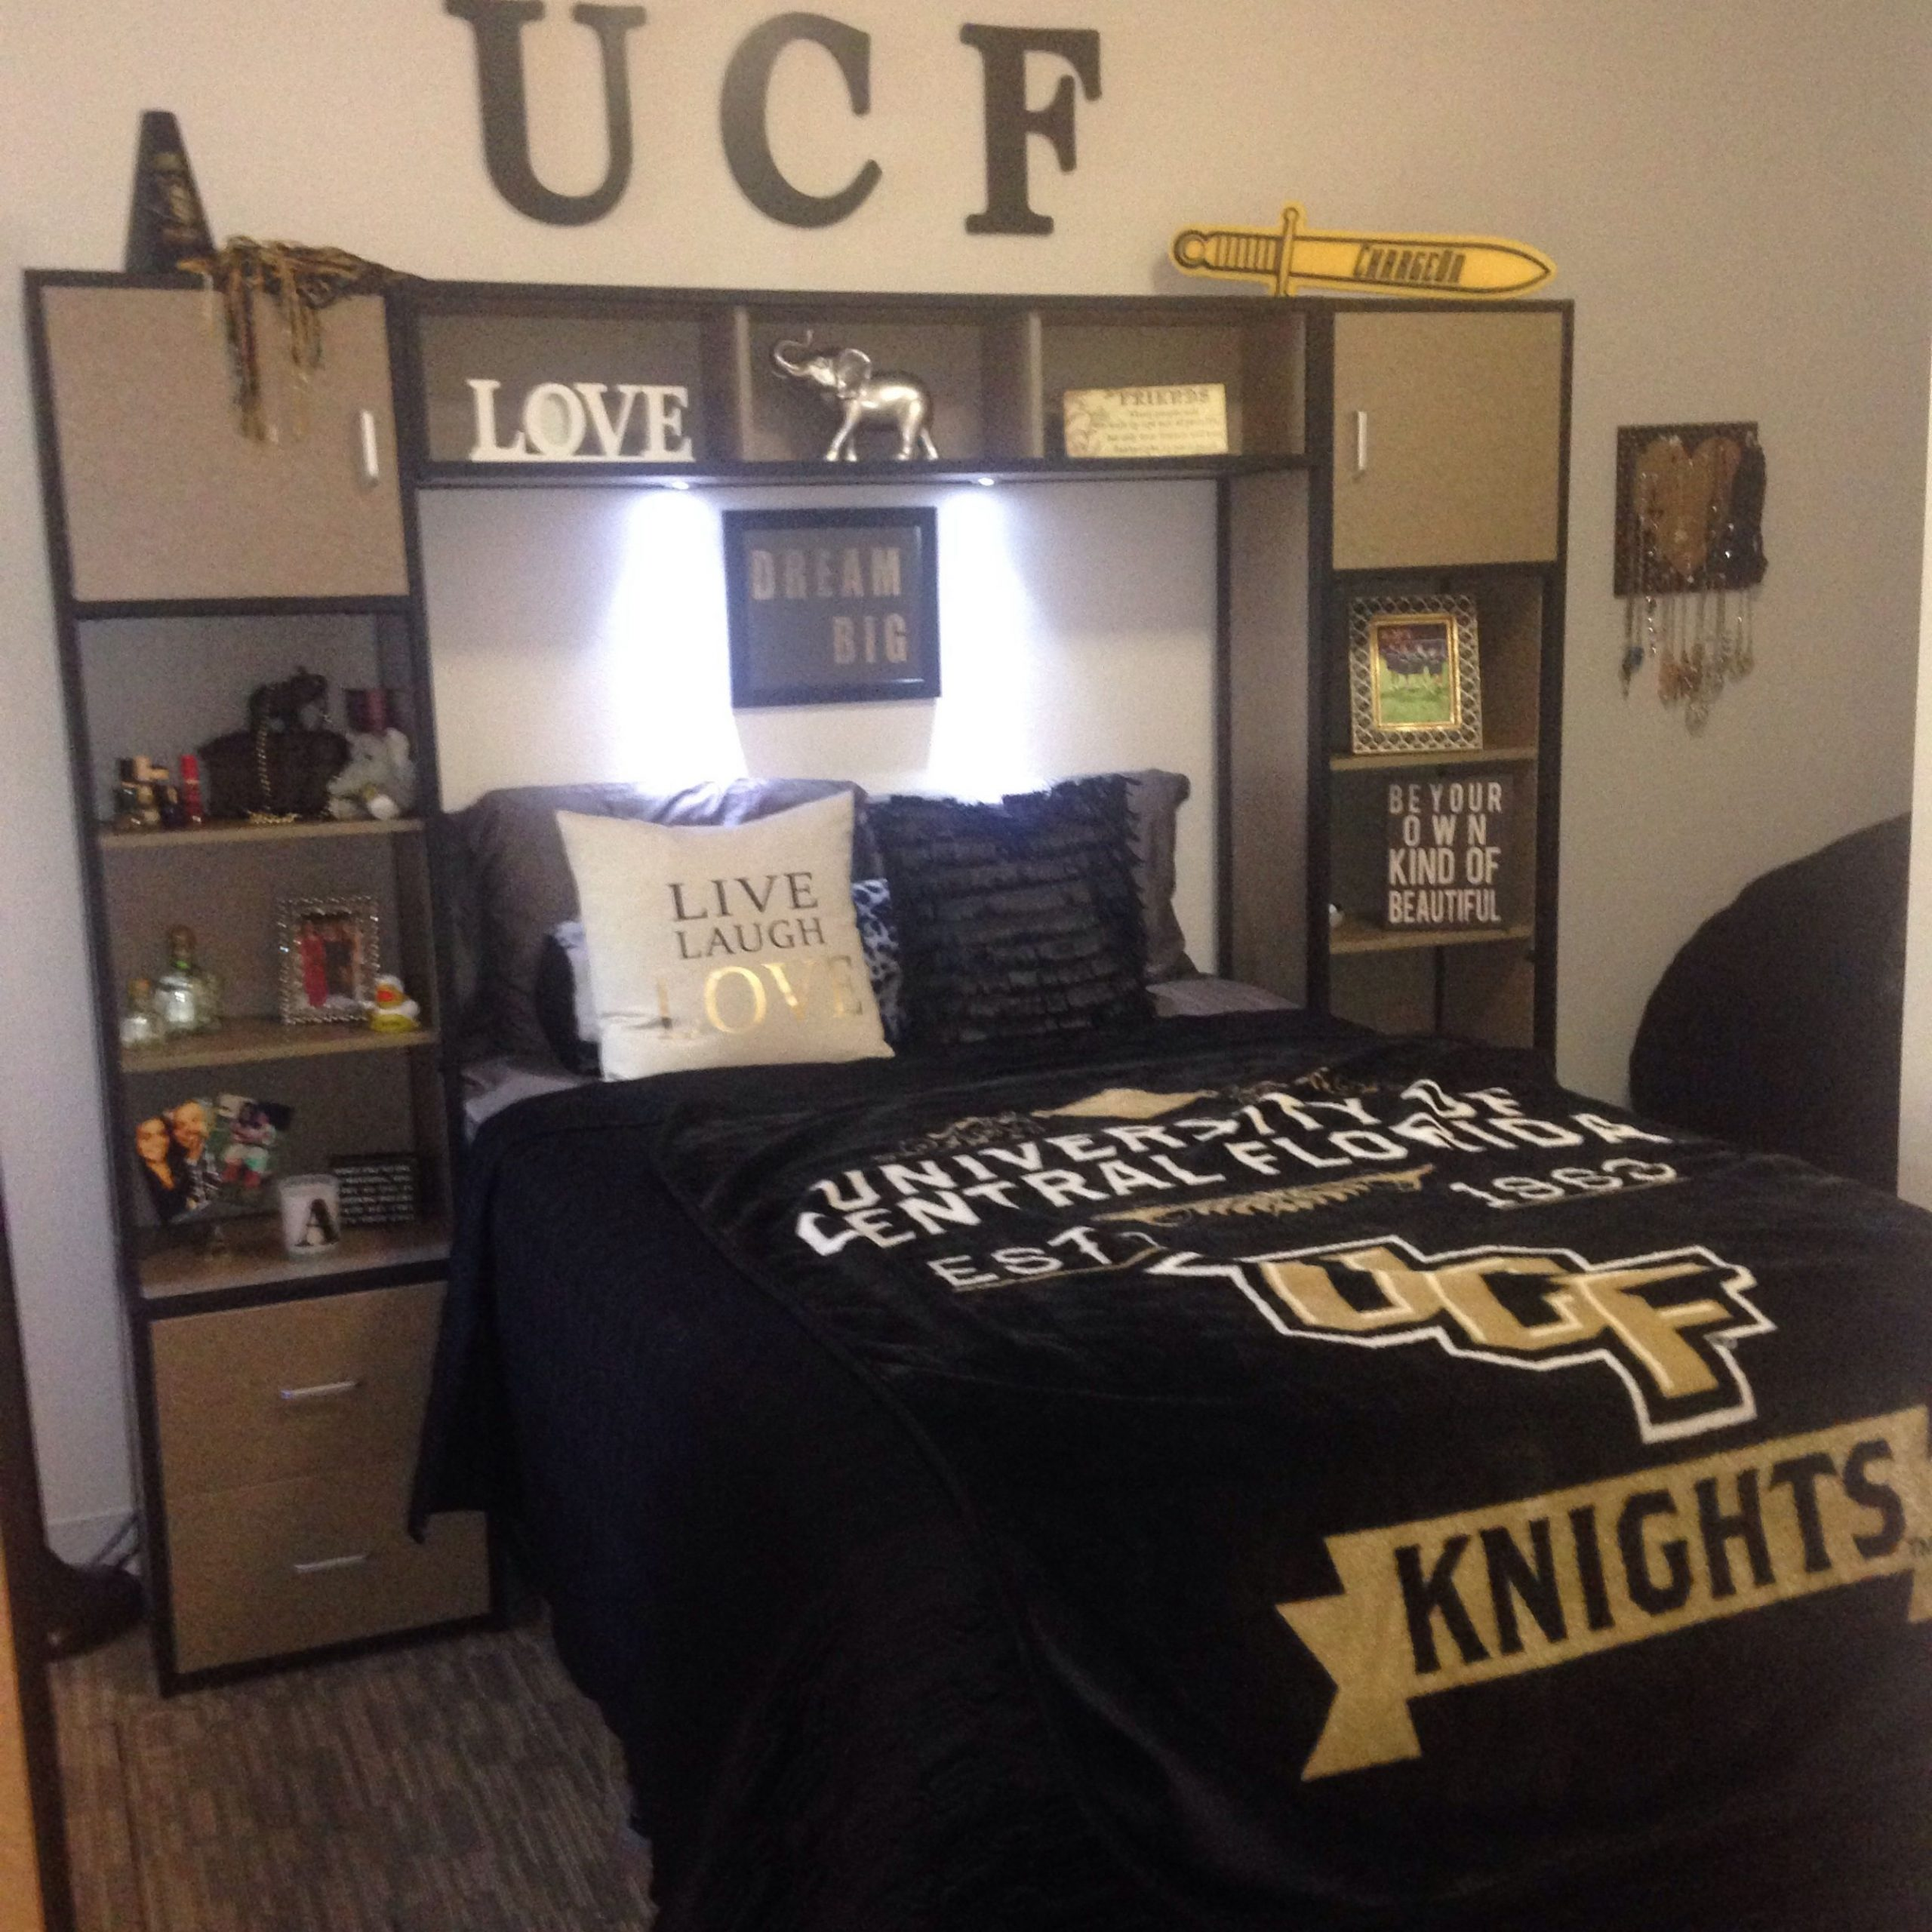 Irresistible Dorm Room Stores On Lovely Several Stores Near Ucf Walmart Tar Bed Bath & Beyond On Dorm Room Stores